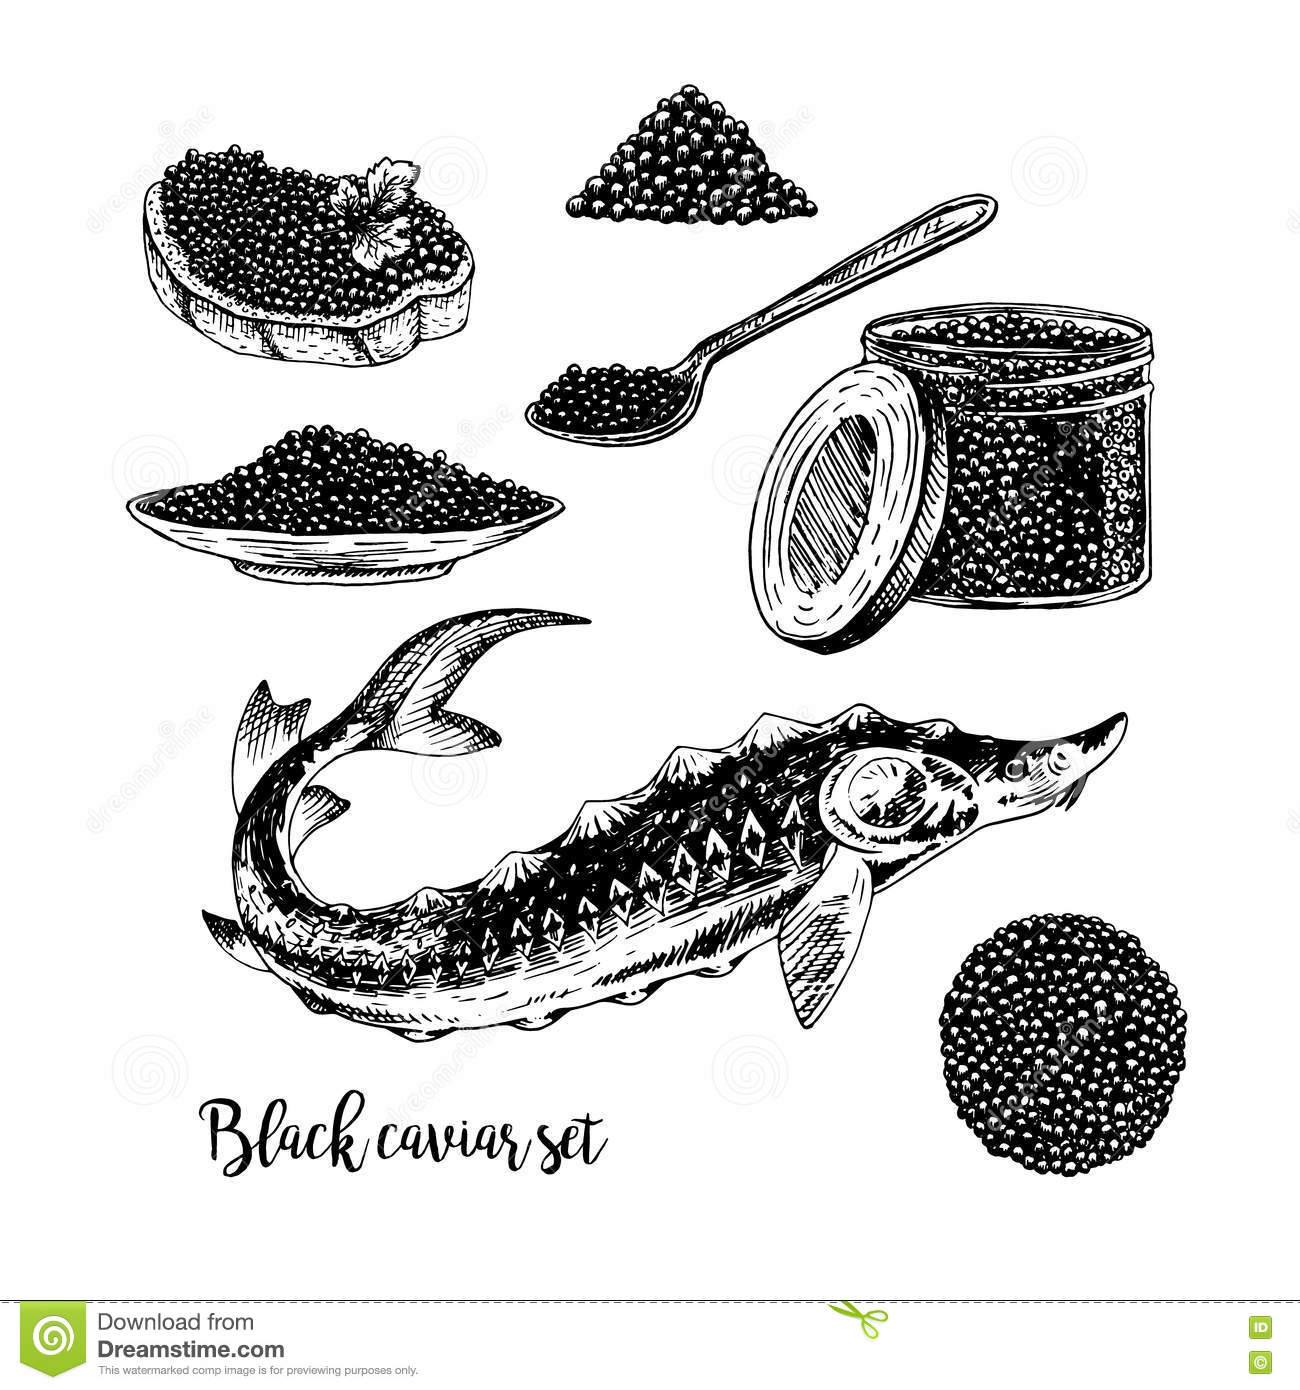 Drawing Lines With Core Graphics : Caviar grunge vector emblem with sturgeons crown